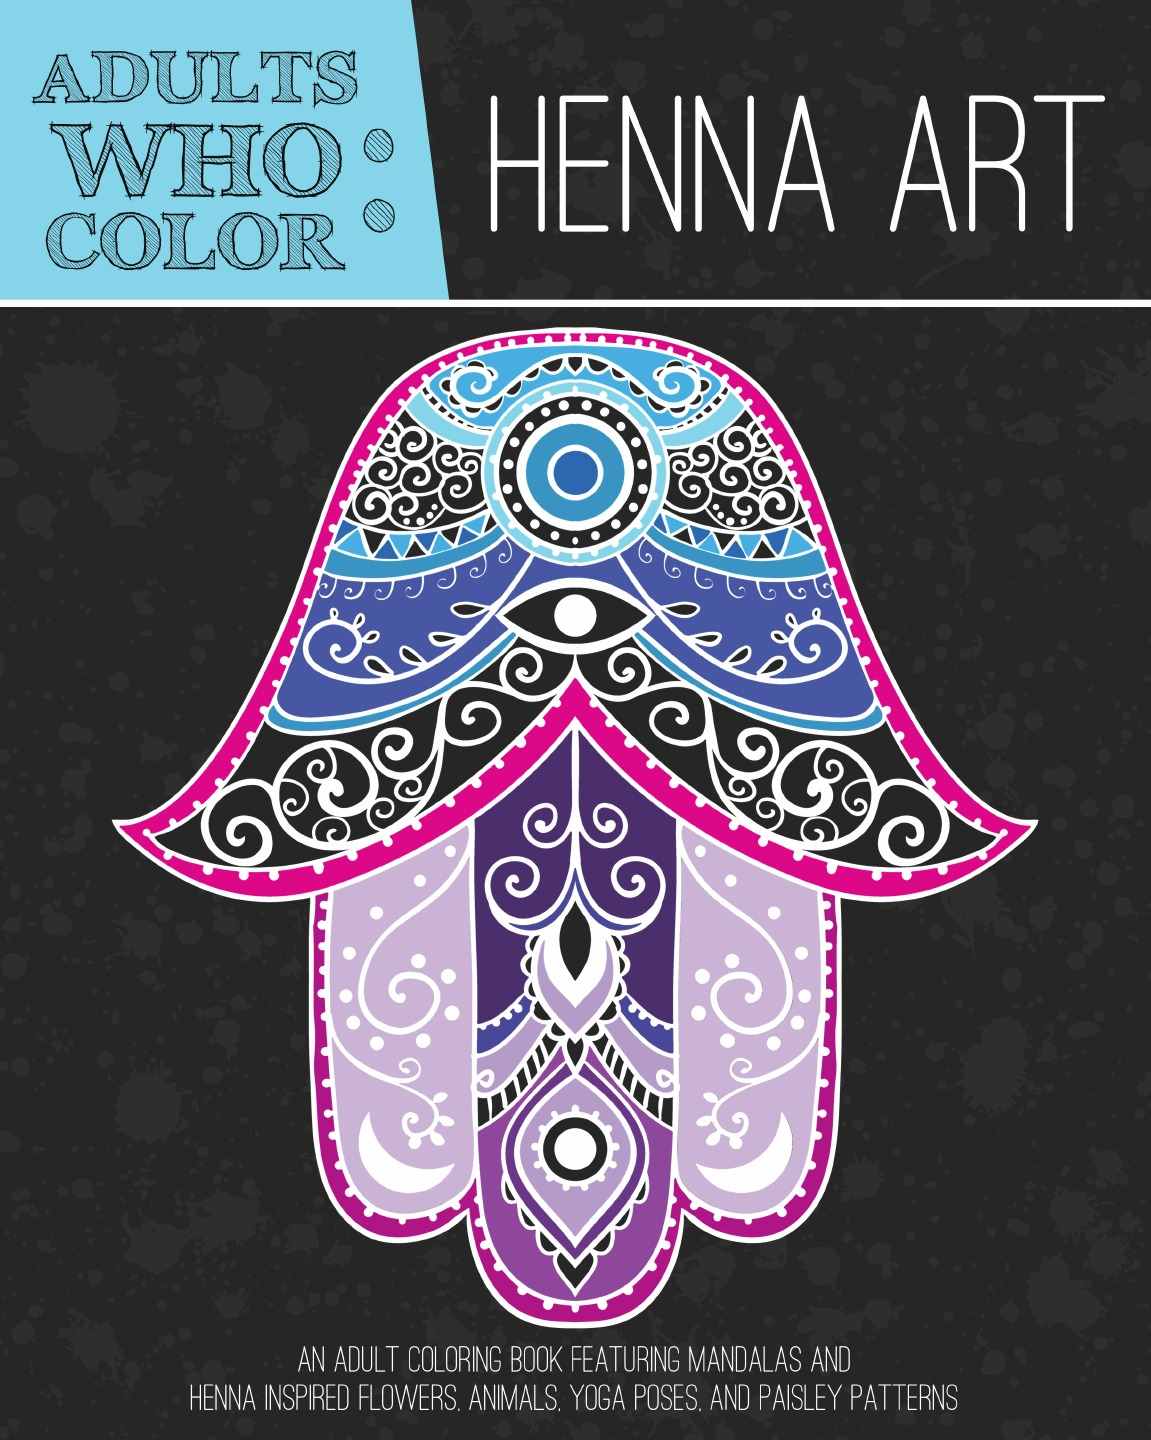 Adults Who Color Henna Art. An Adult Coloring Book Featuring Mandalas and Henna Inspired Flowers, Animals, Yoga Poses, and Paisley Patterns coloring mandalas for dummies